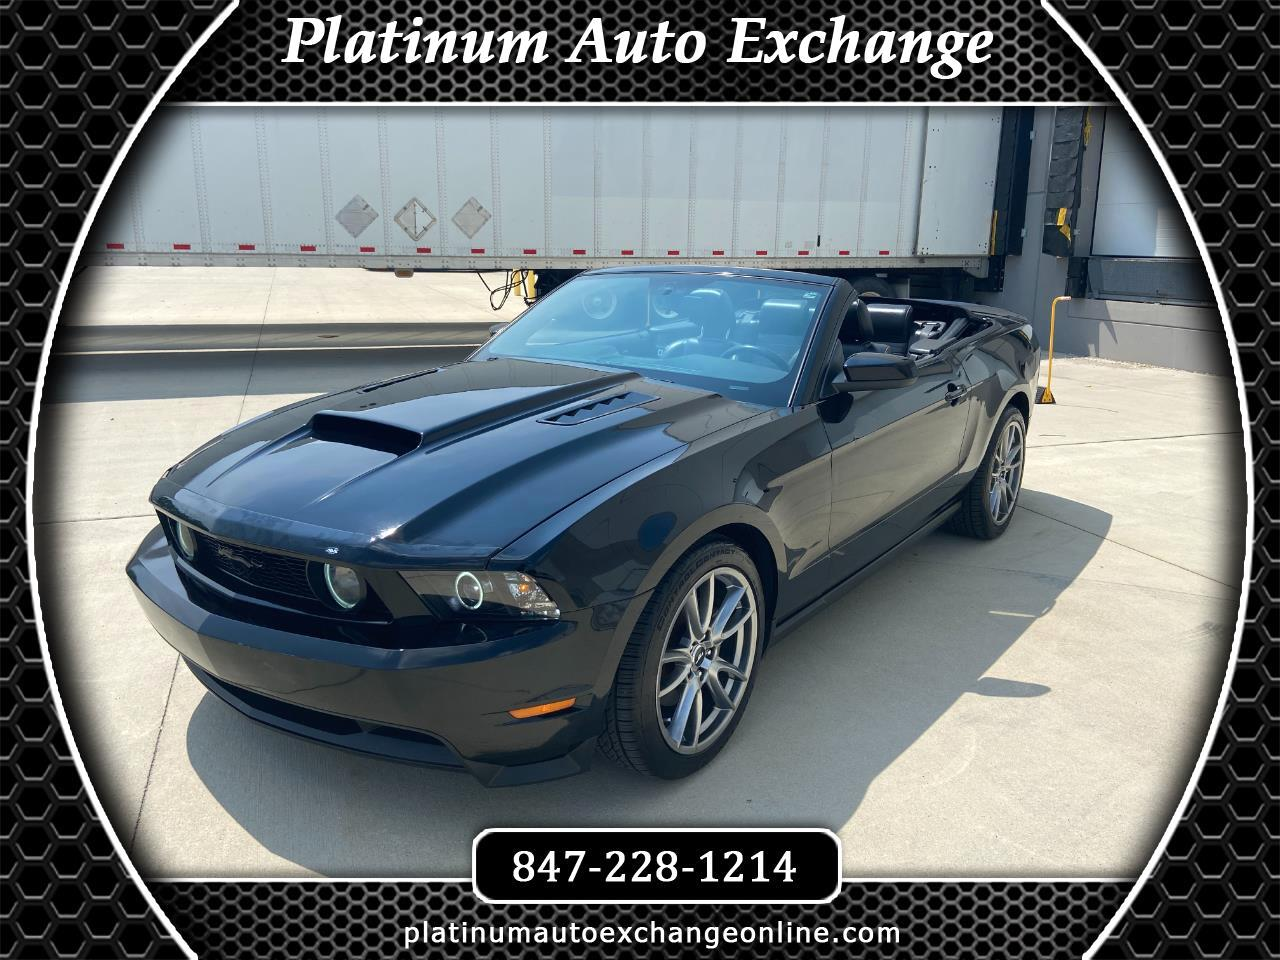 Ford Mustang 2dr Convertible GT Premium 2010